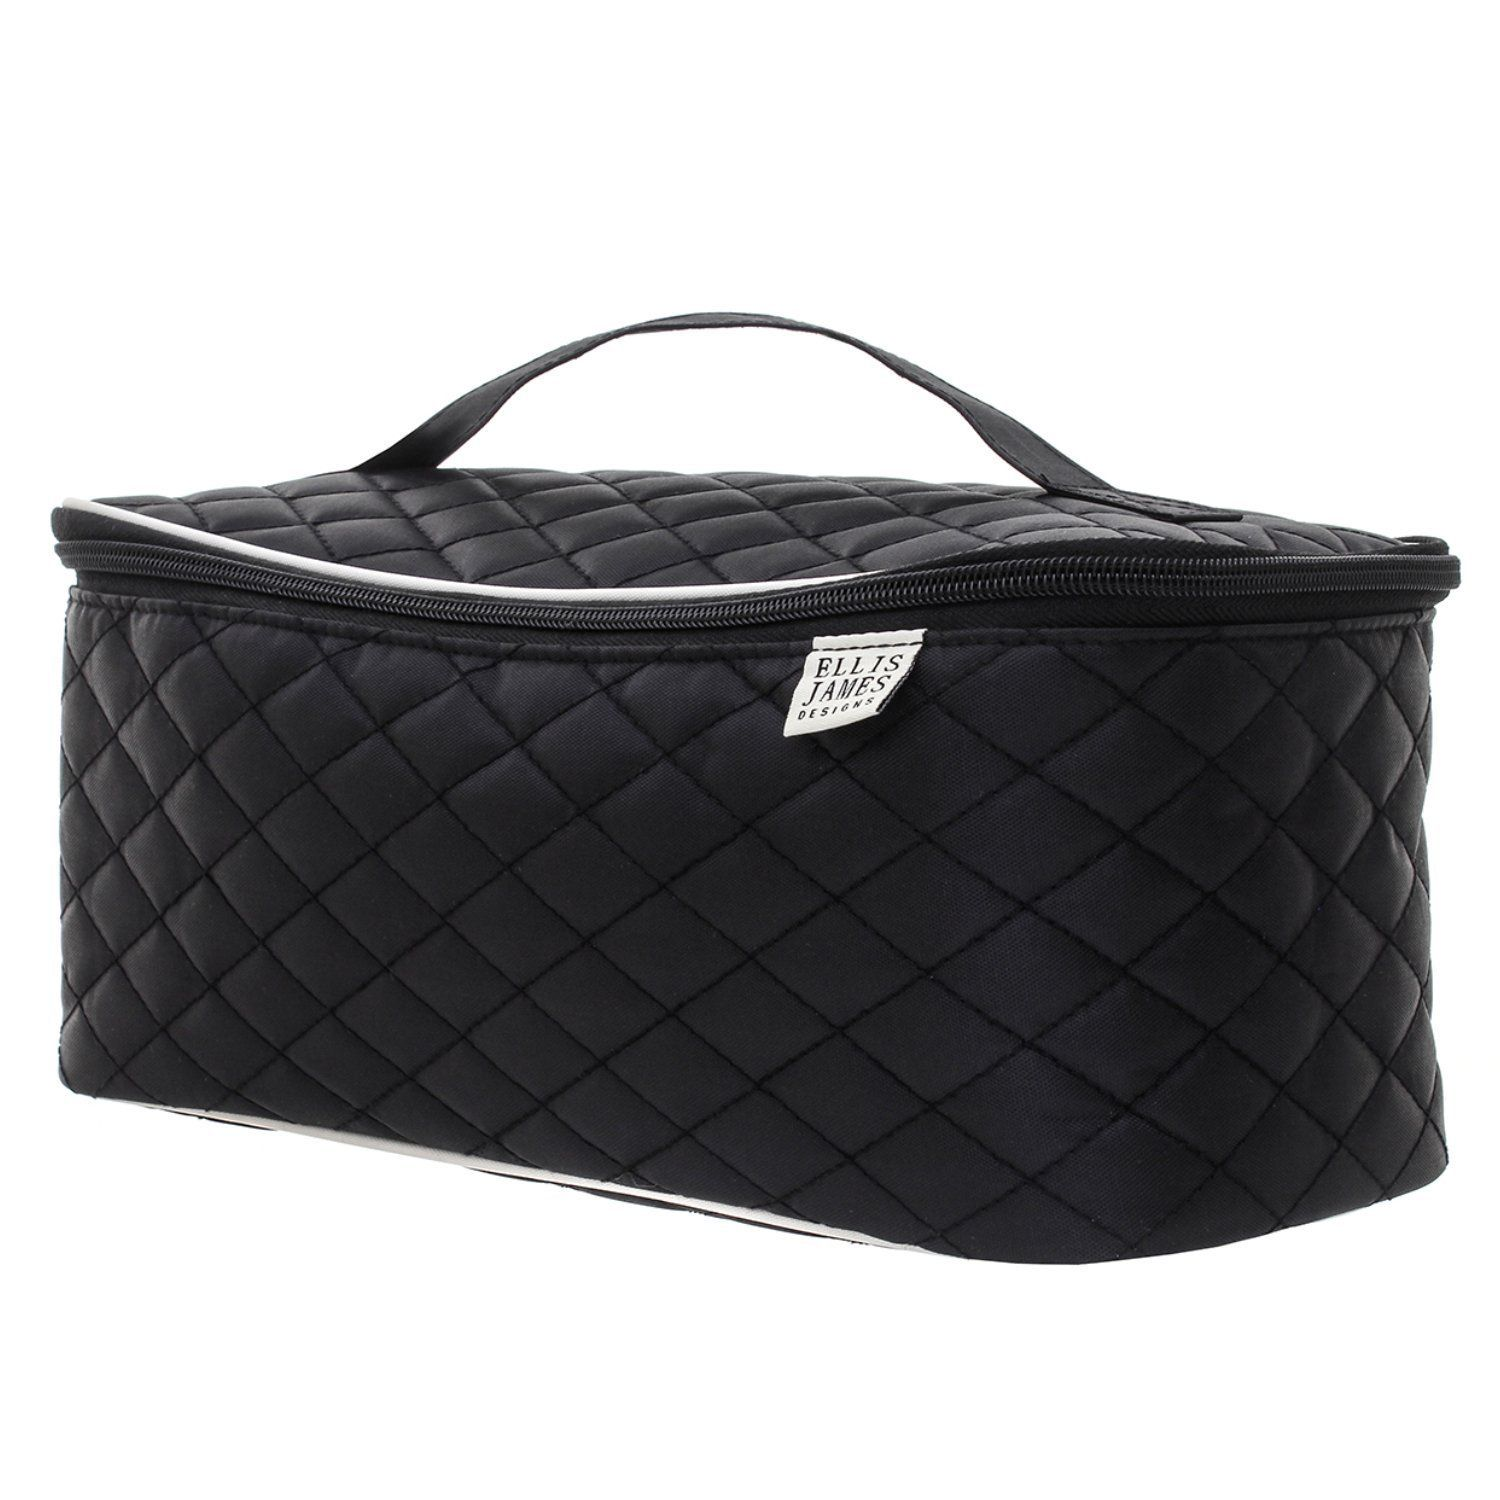 728c0f29c8f64 Ellis James Designs Large Travel Cosmetic Case Makeup Bag Organizer (Black)     Review more details here   Travel cosmetic bag